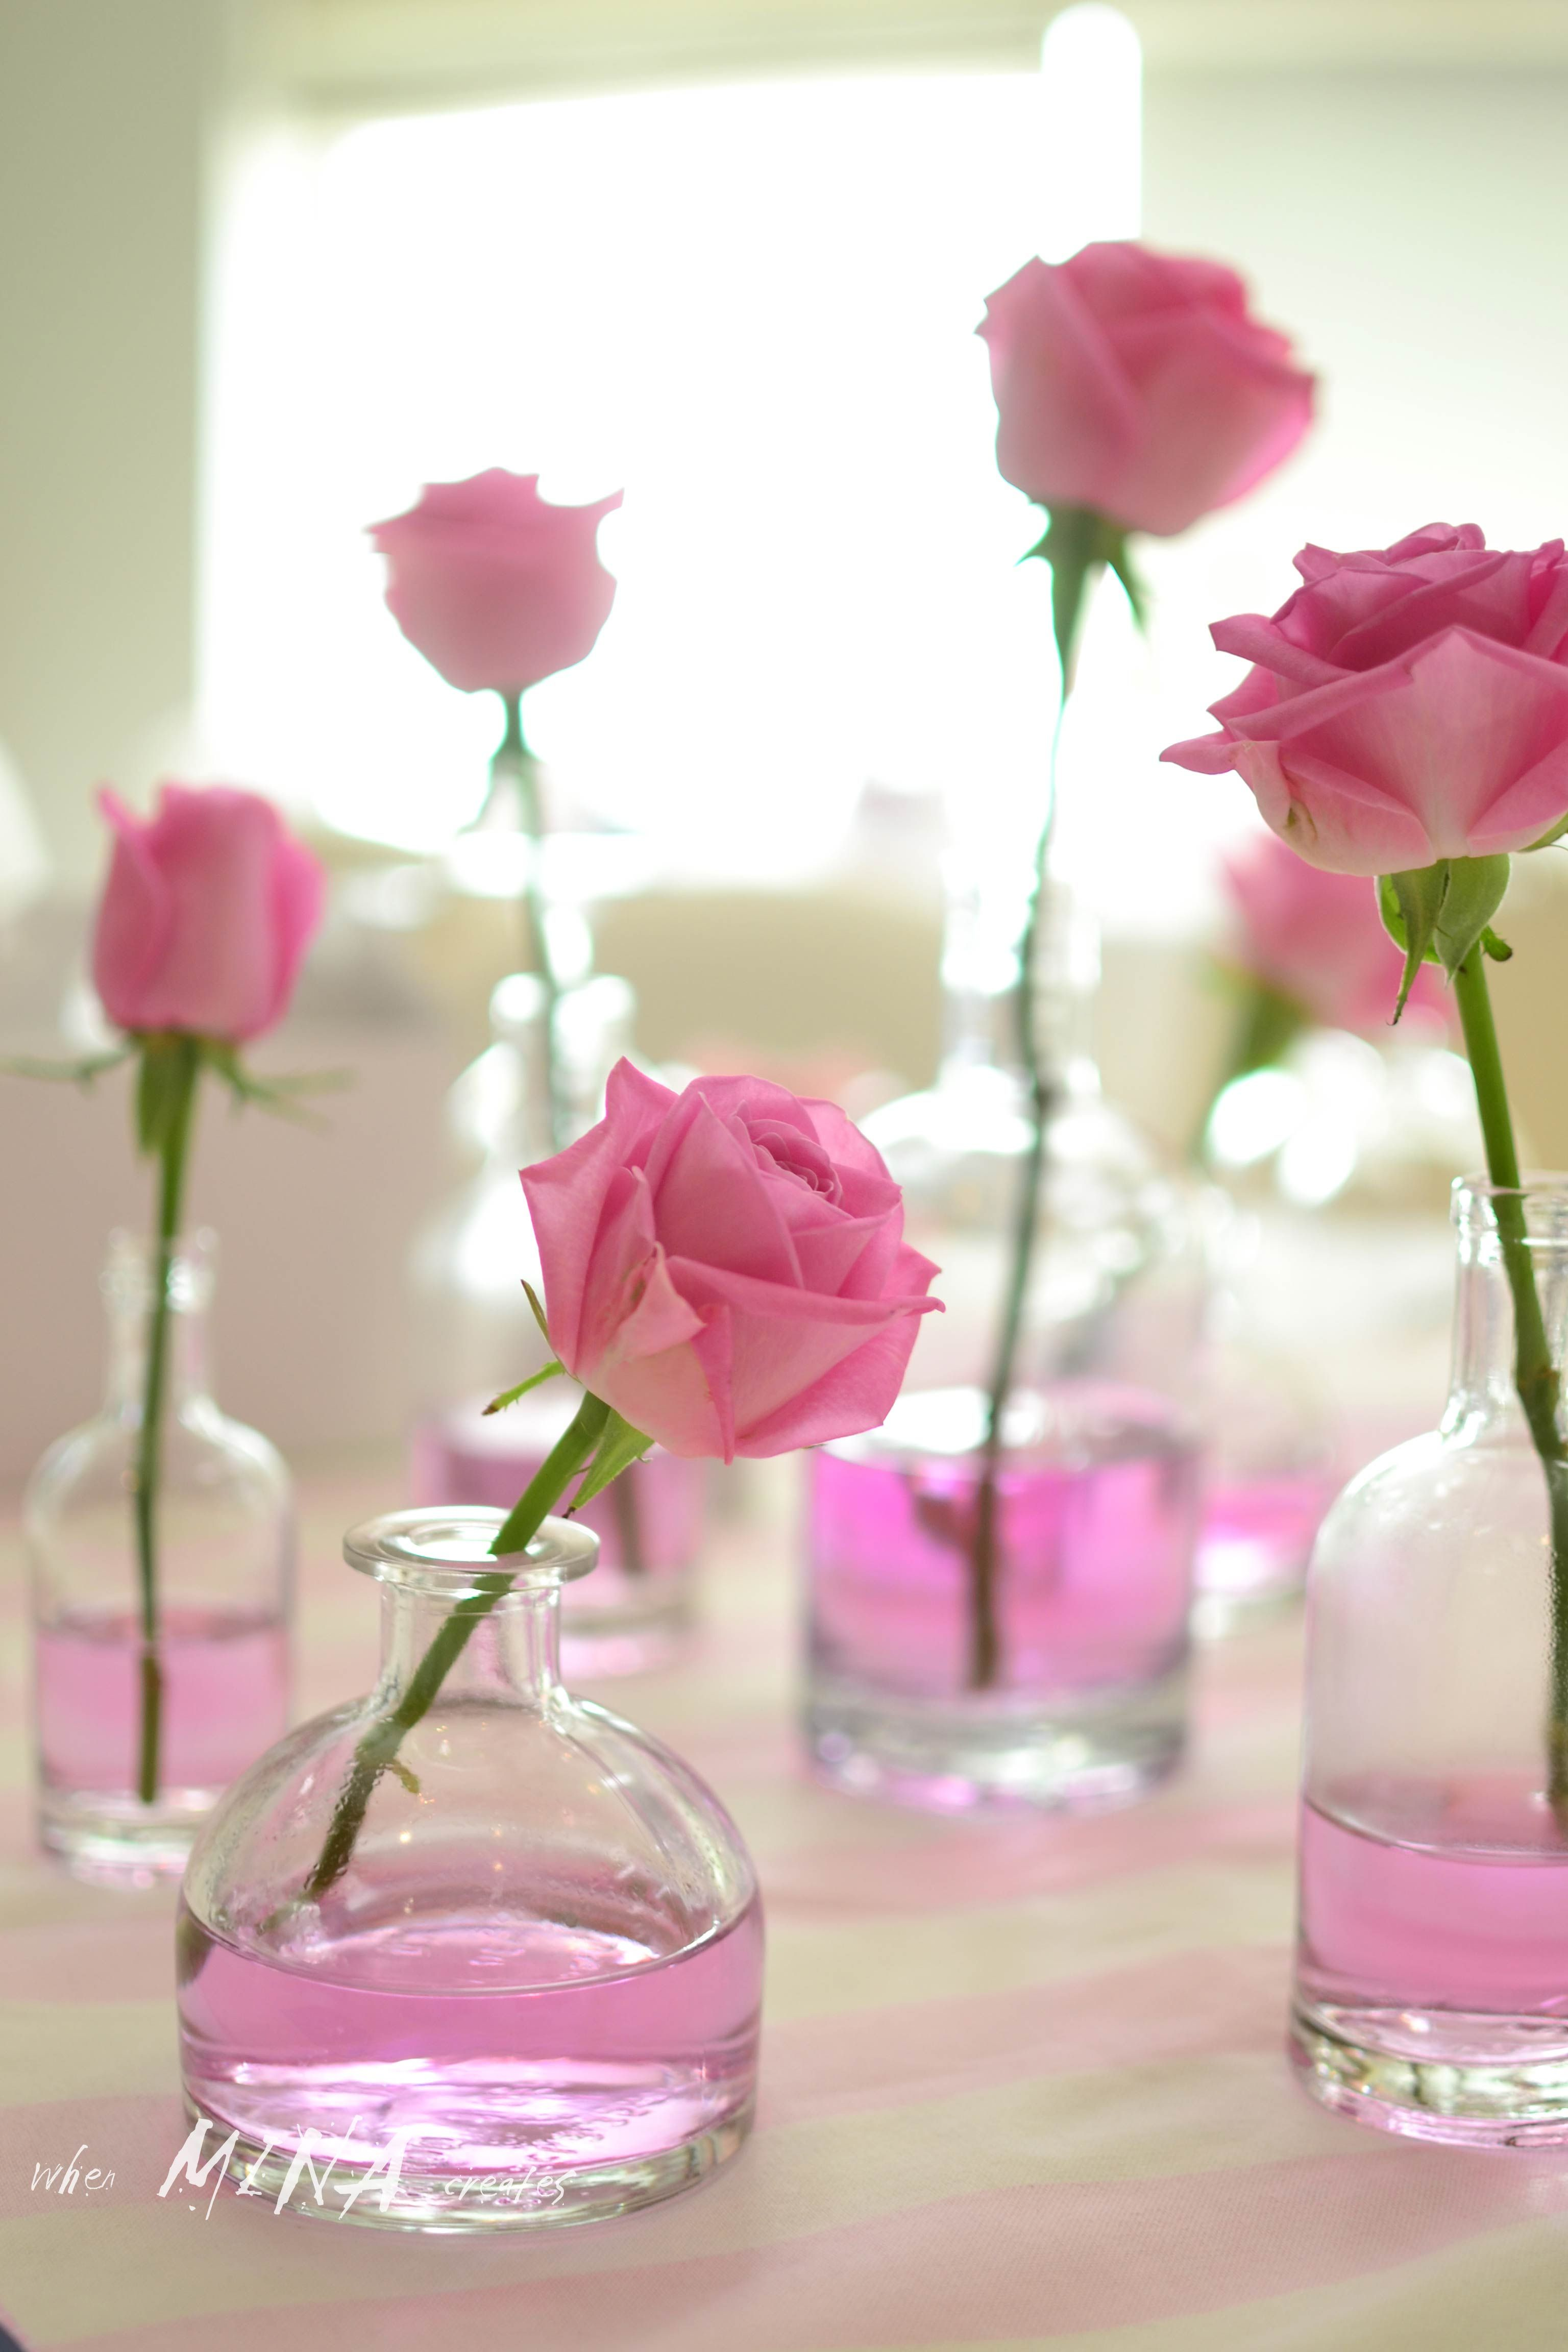 Pin By When Mina Creates On Navy Blue And Pink Hearts Beautiful Flowers Aesthetic Roses Flower Wallpaper